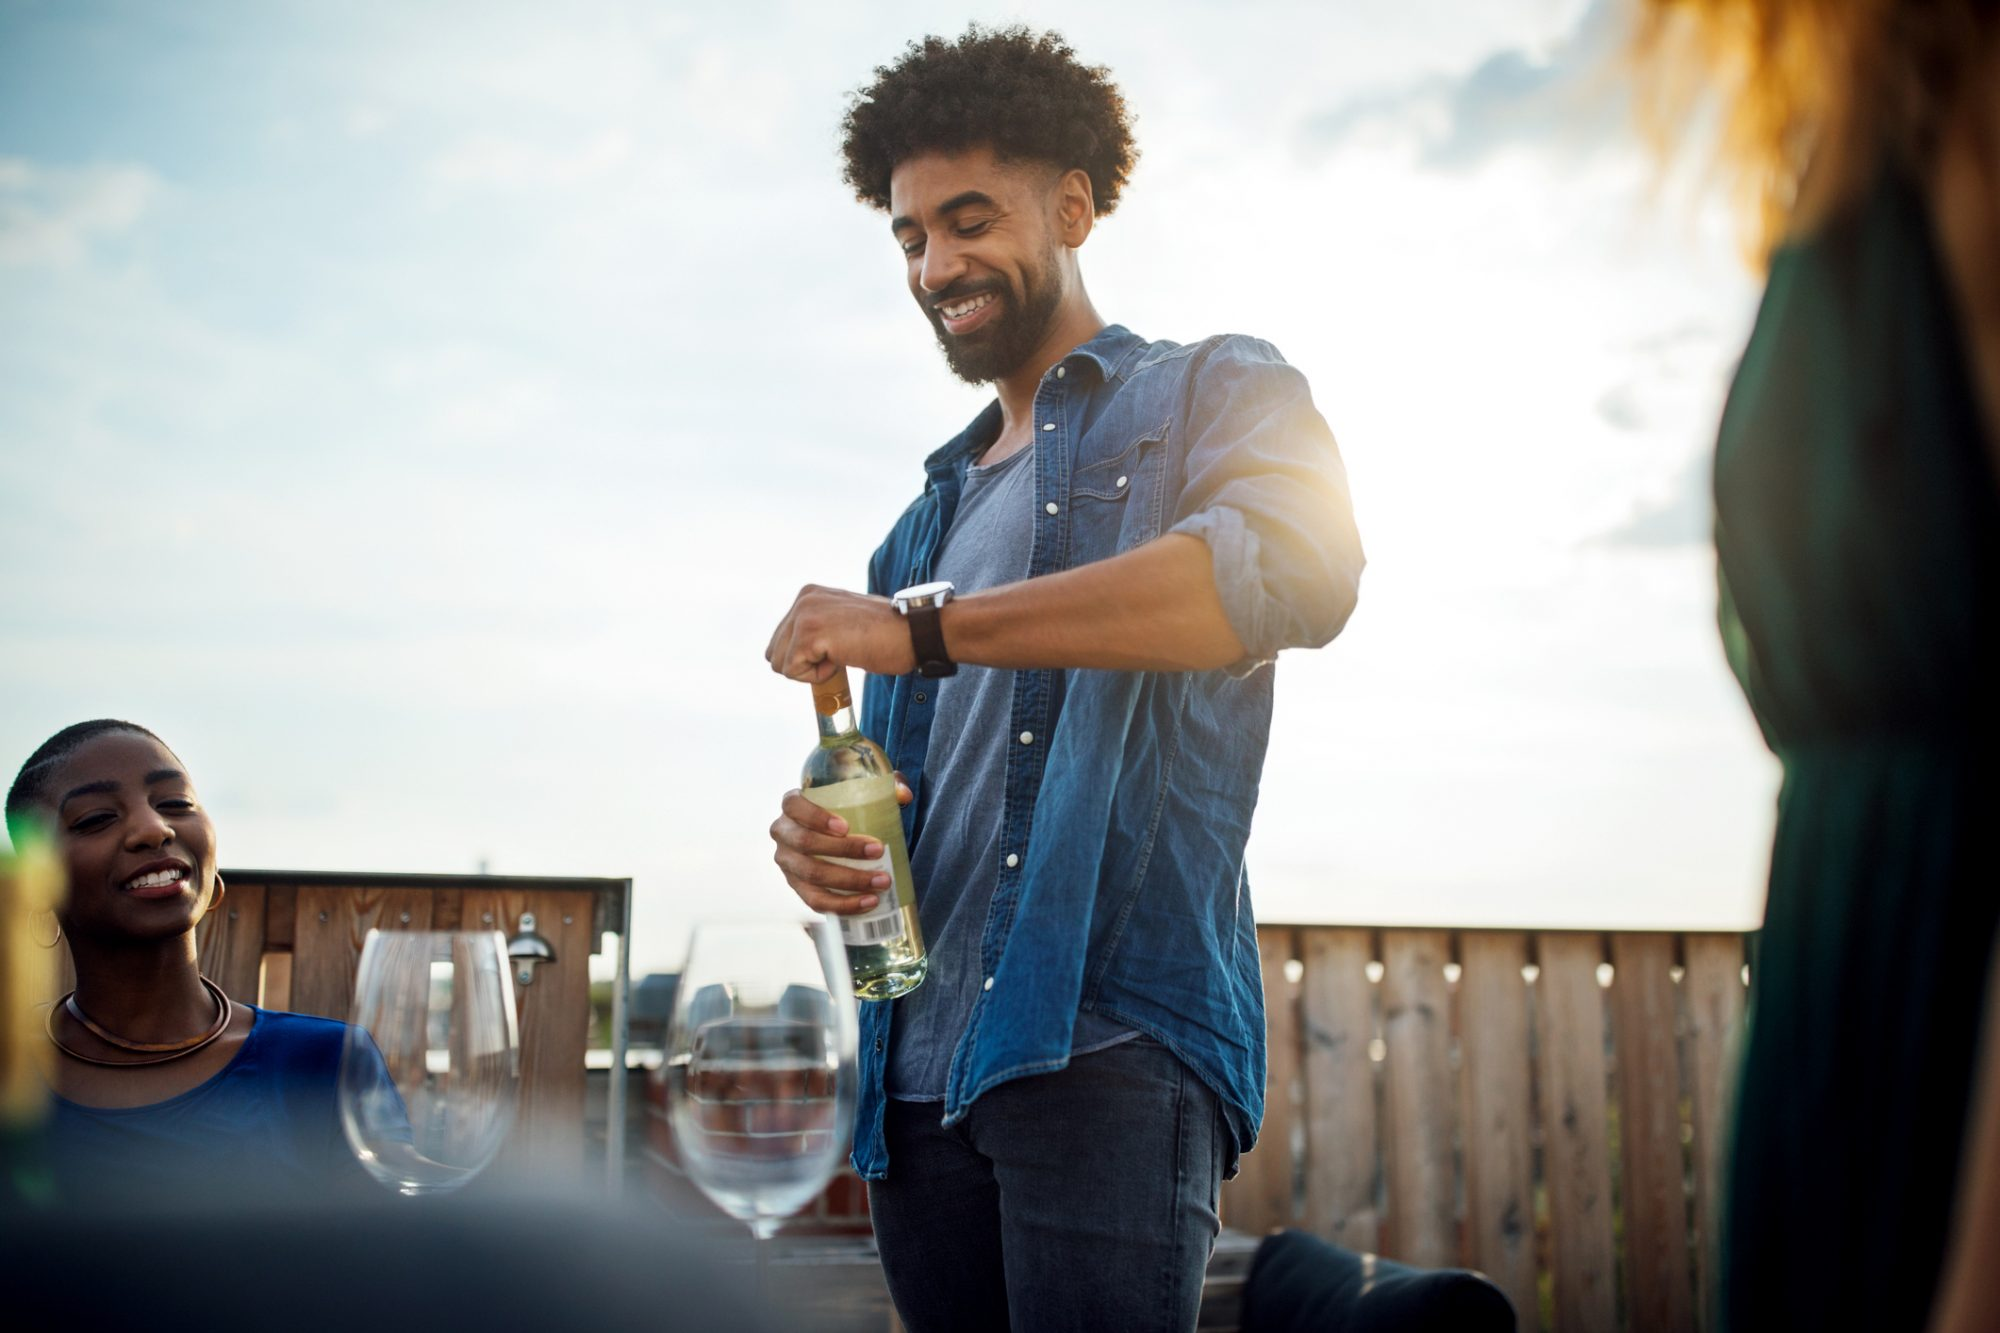 Young man opening wine bottle at rooftop party